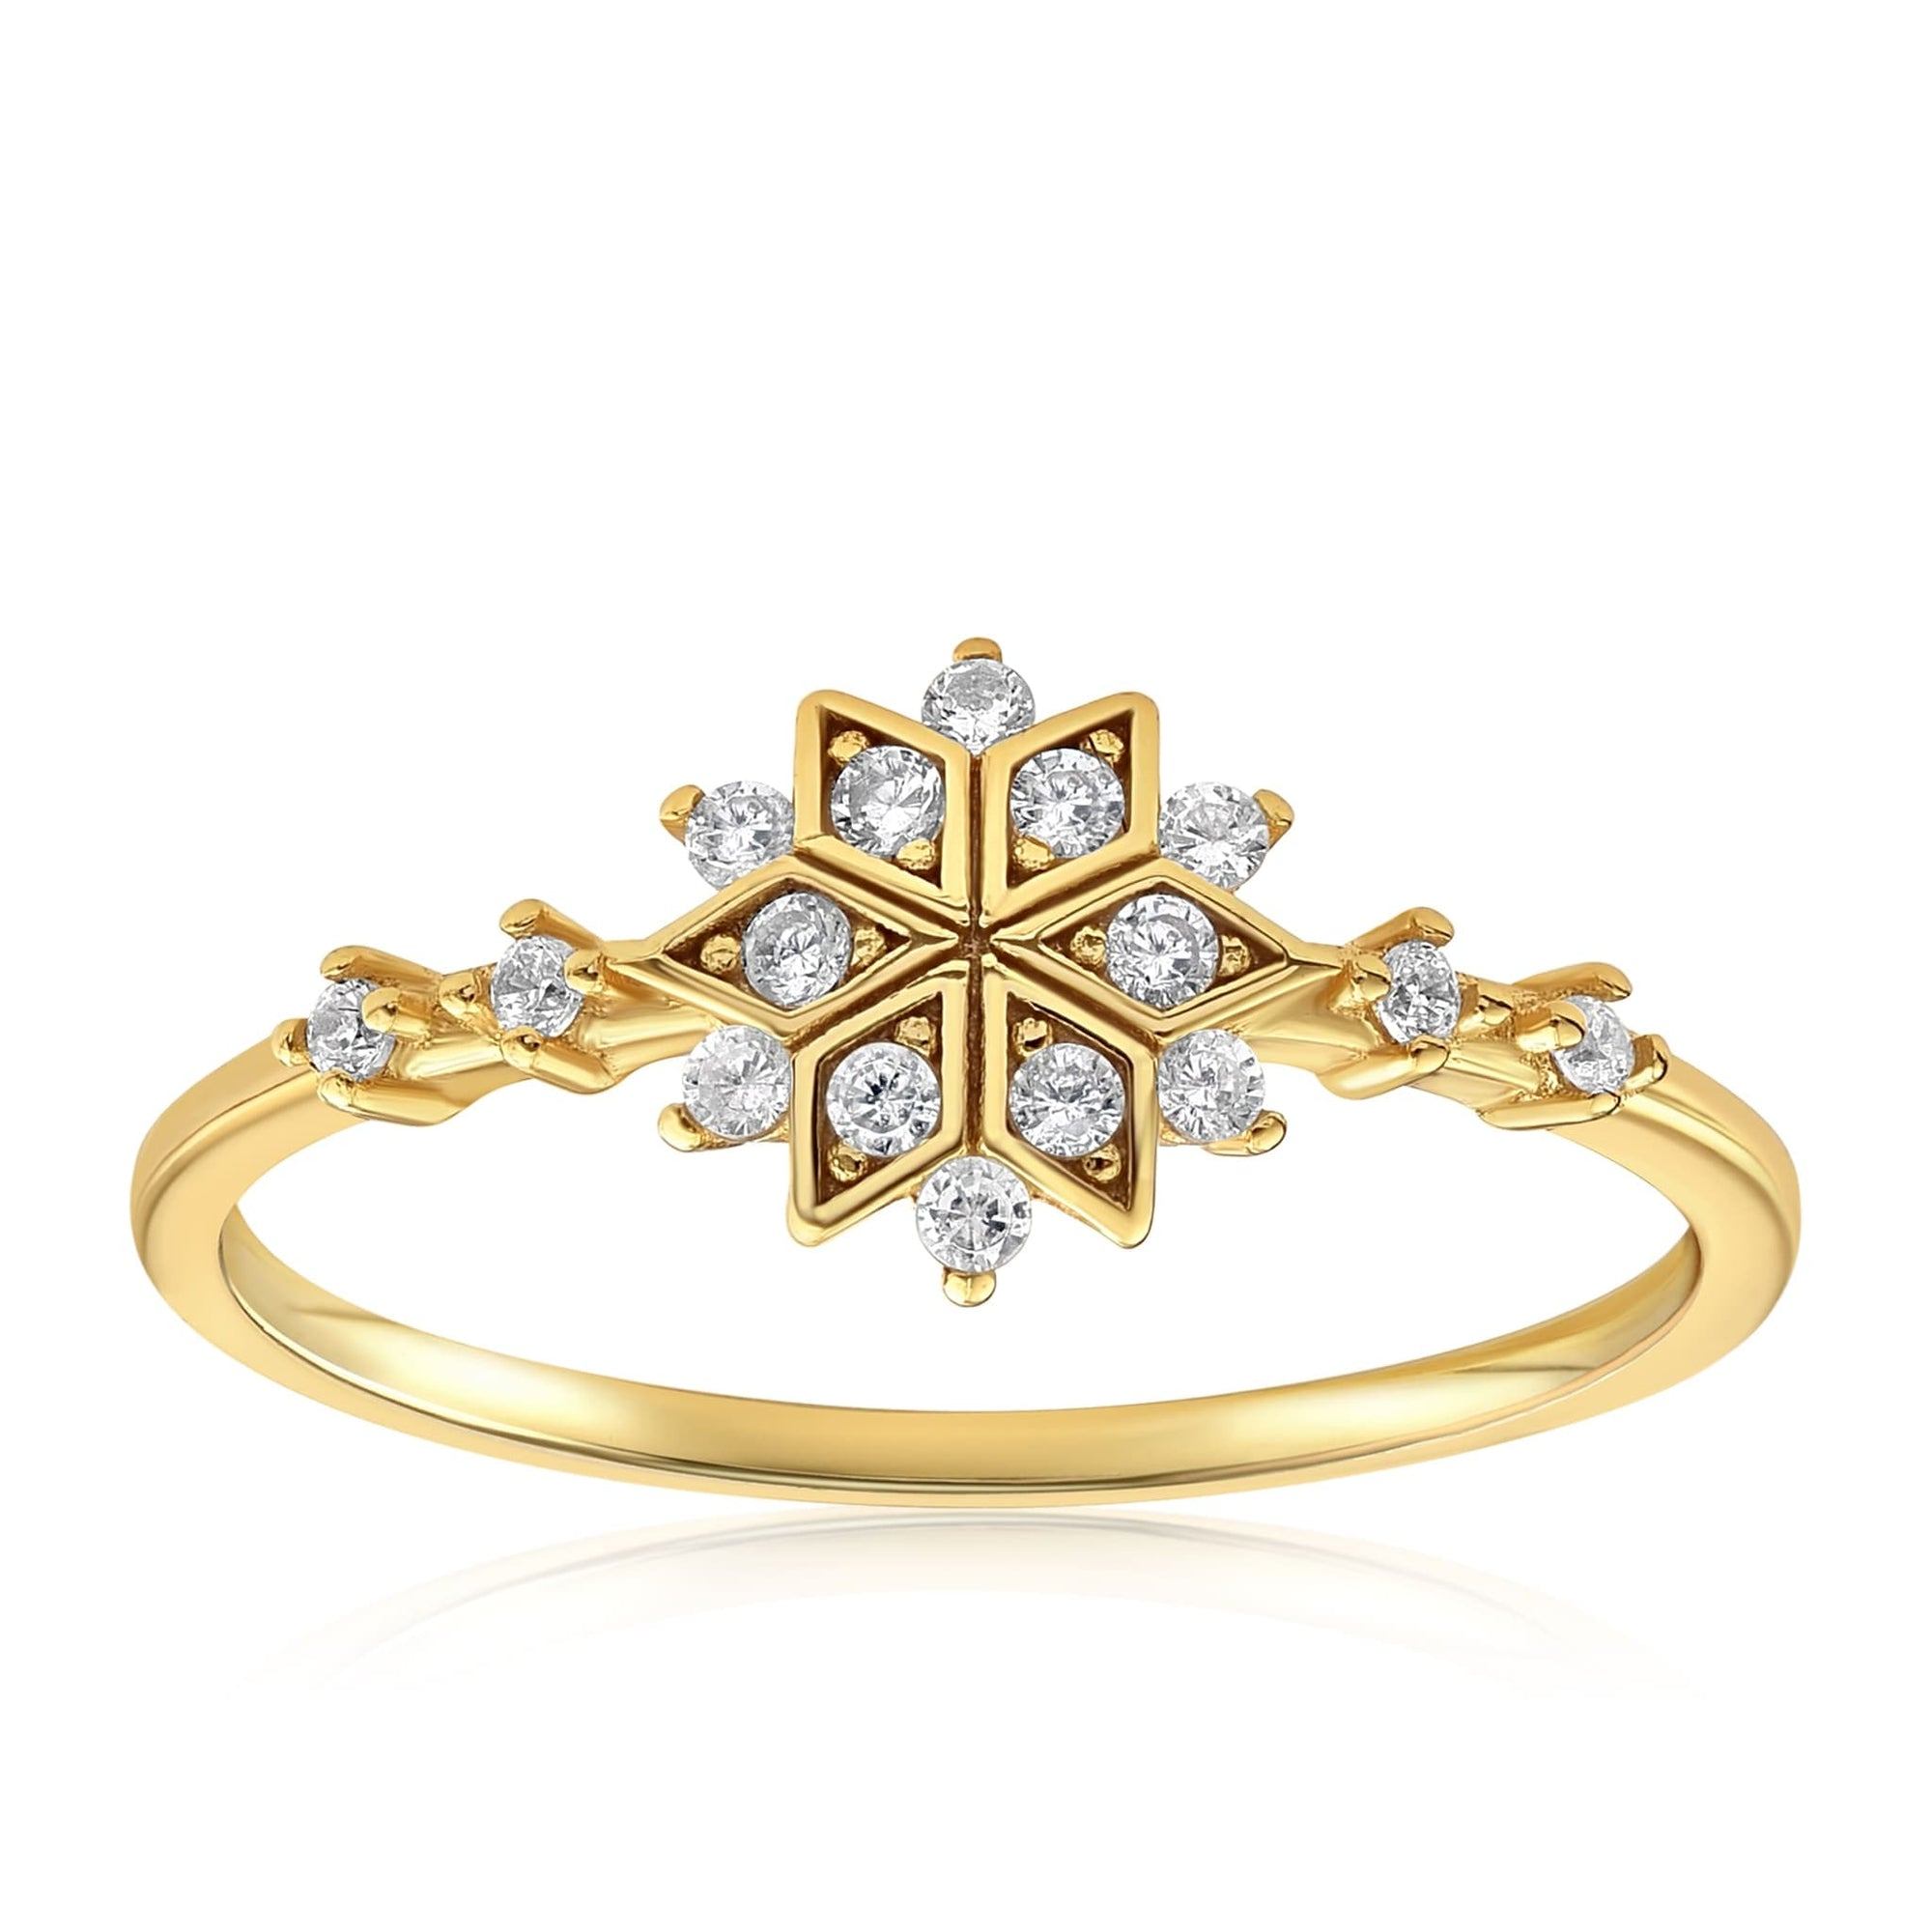 Sophia Snowflake Ring - Front View Facing Up - 18K Yellow Gold Vermeil Featured